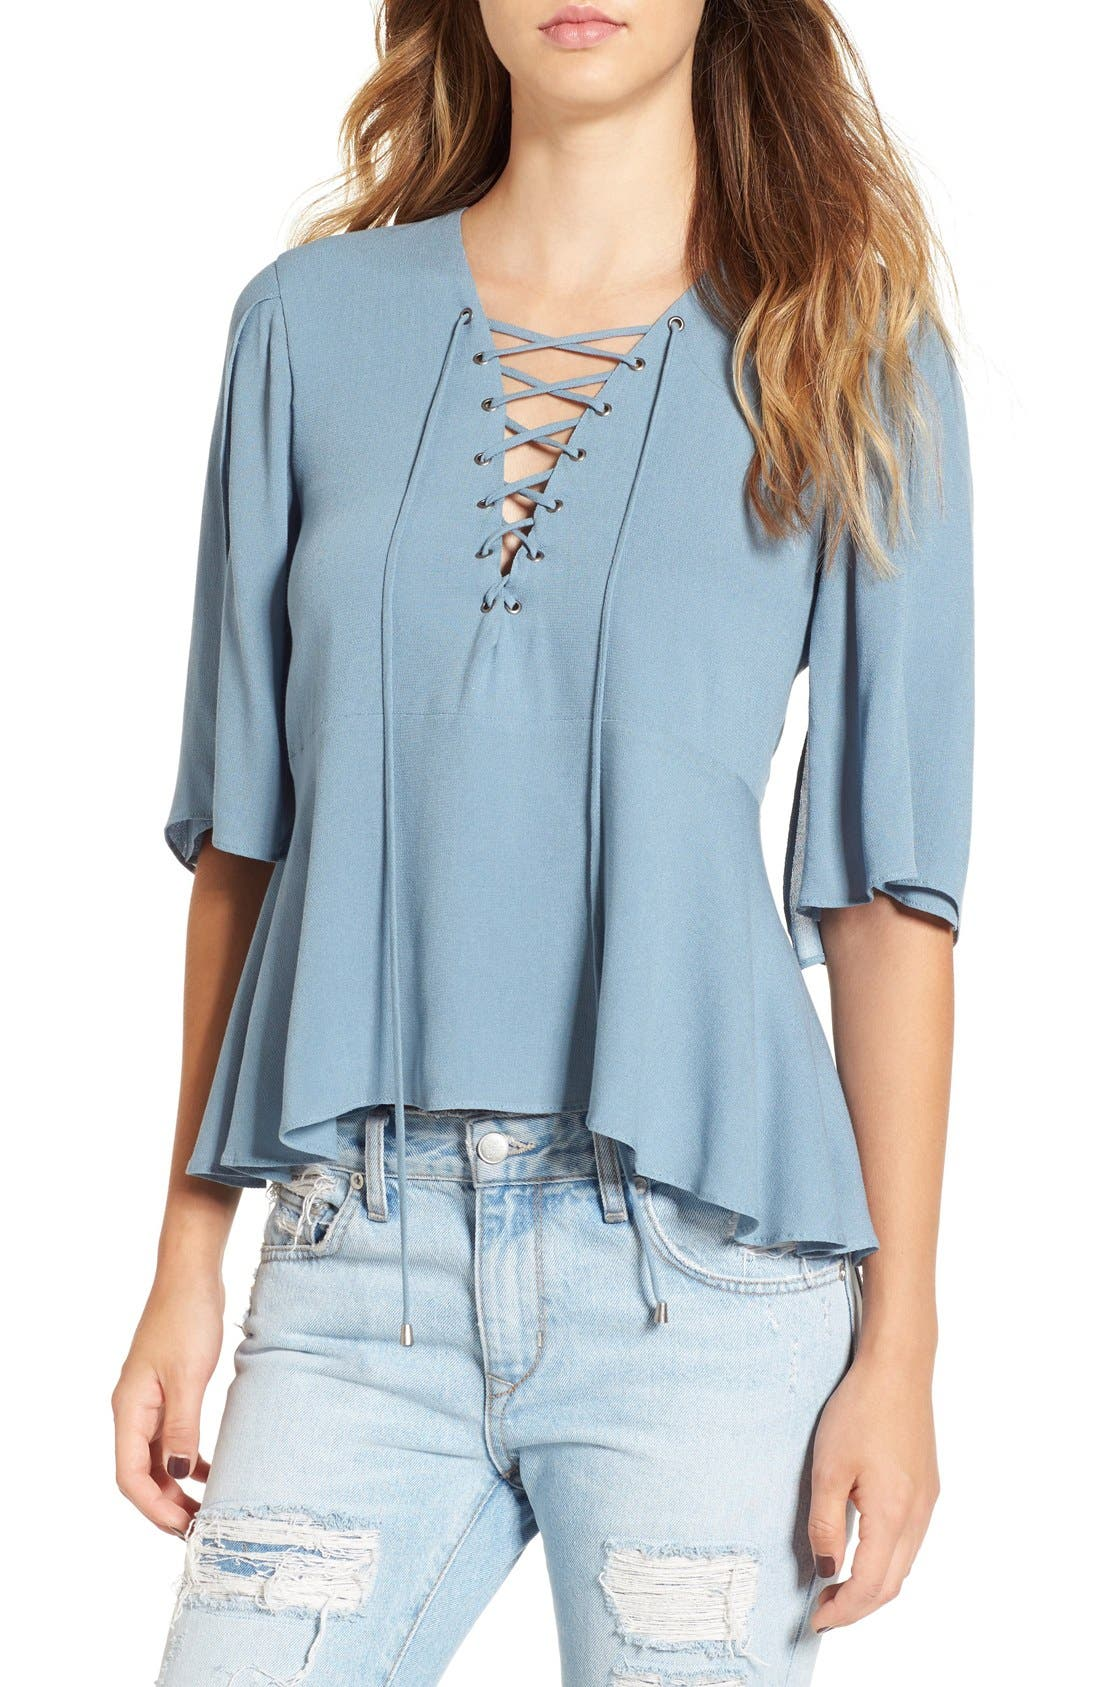 Main Image - Lovers + Friends 'Boulevard' Lace-Up Top